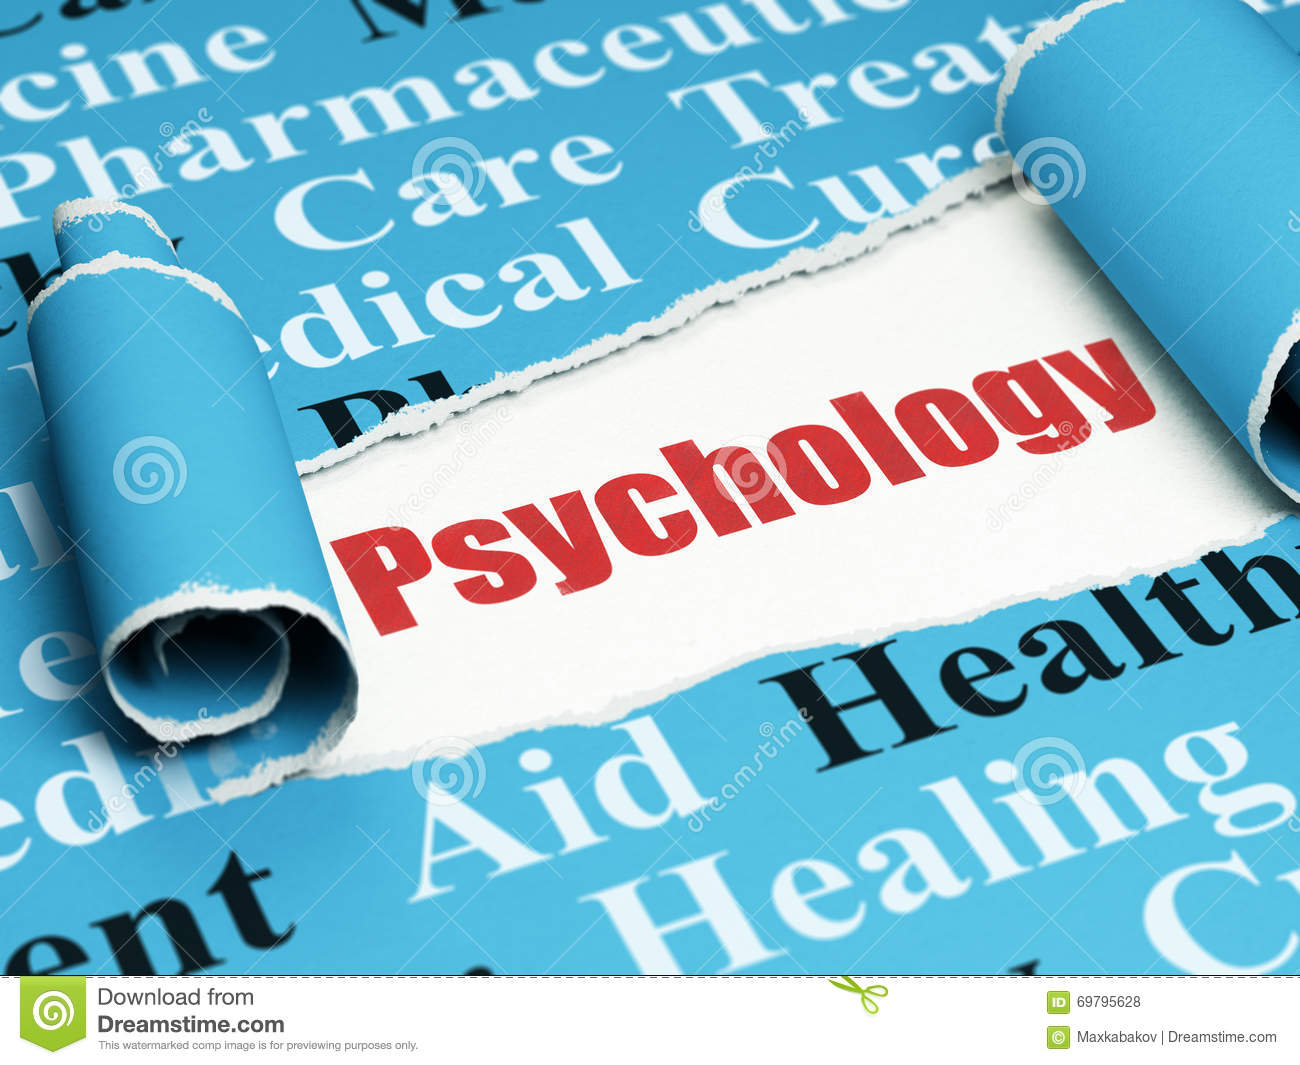 010 Research Paper Psychology On Dreams Health Concept Red Text Under Piece Torn Curled Blue Tag Cloud Rendering Singular Topics Articles Full